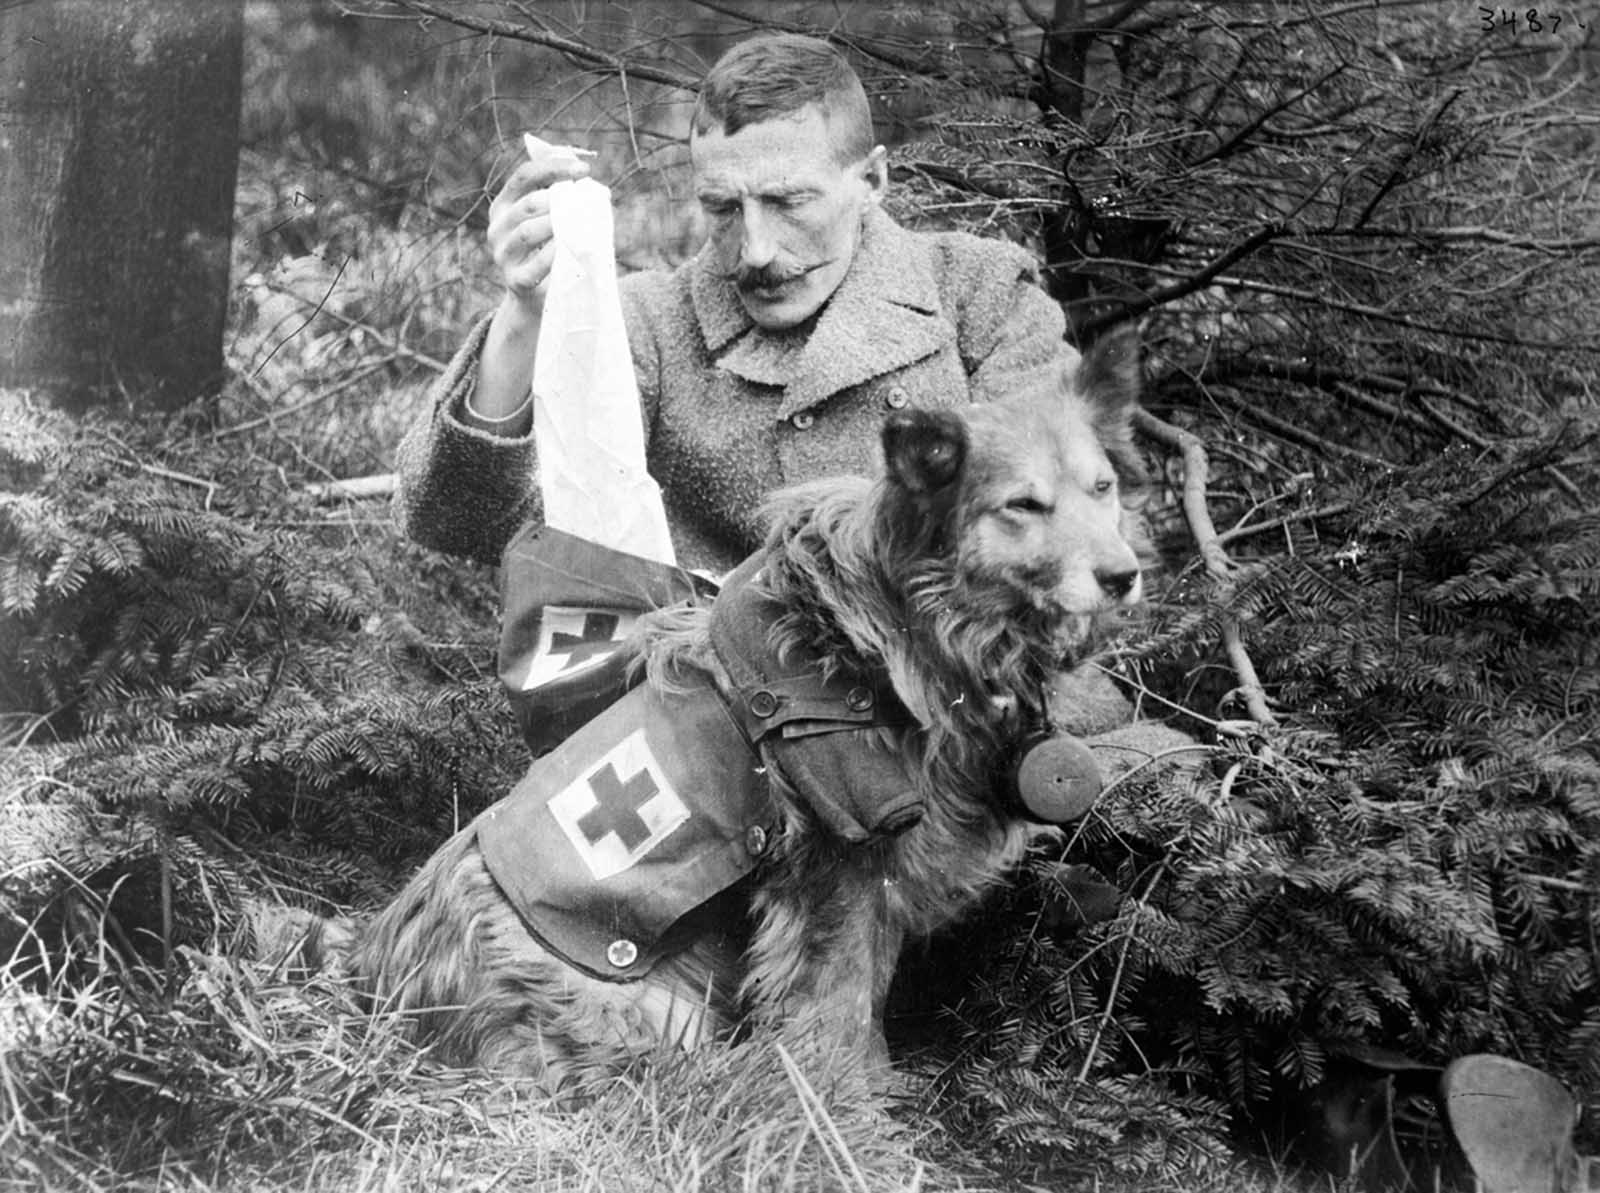 Bandages retrieved from the kit of a British Dog, ca. 1915.